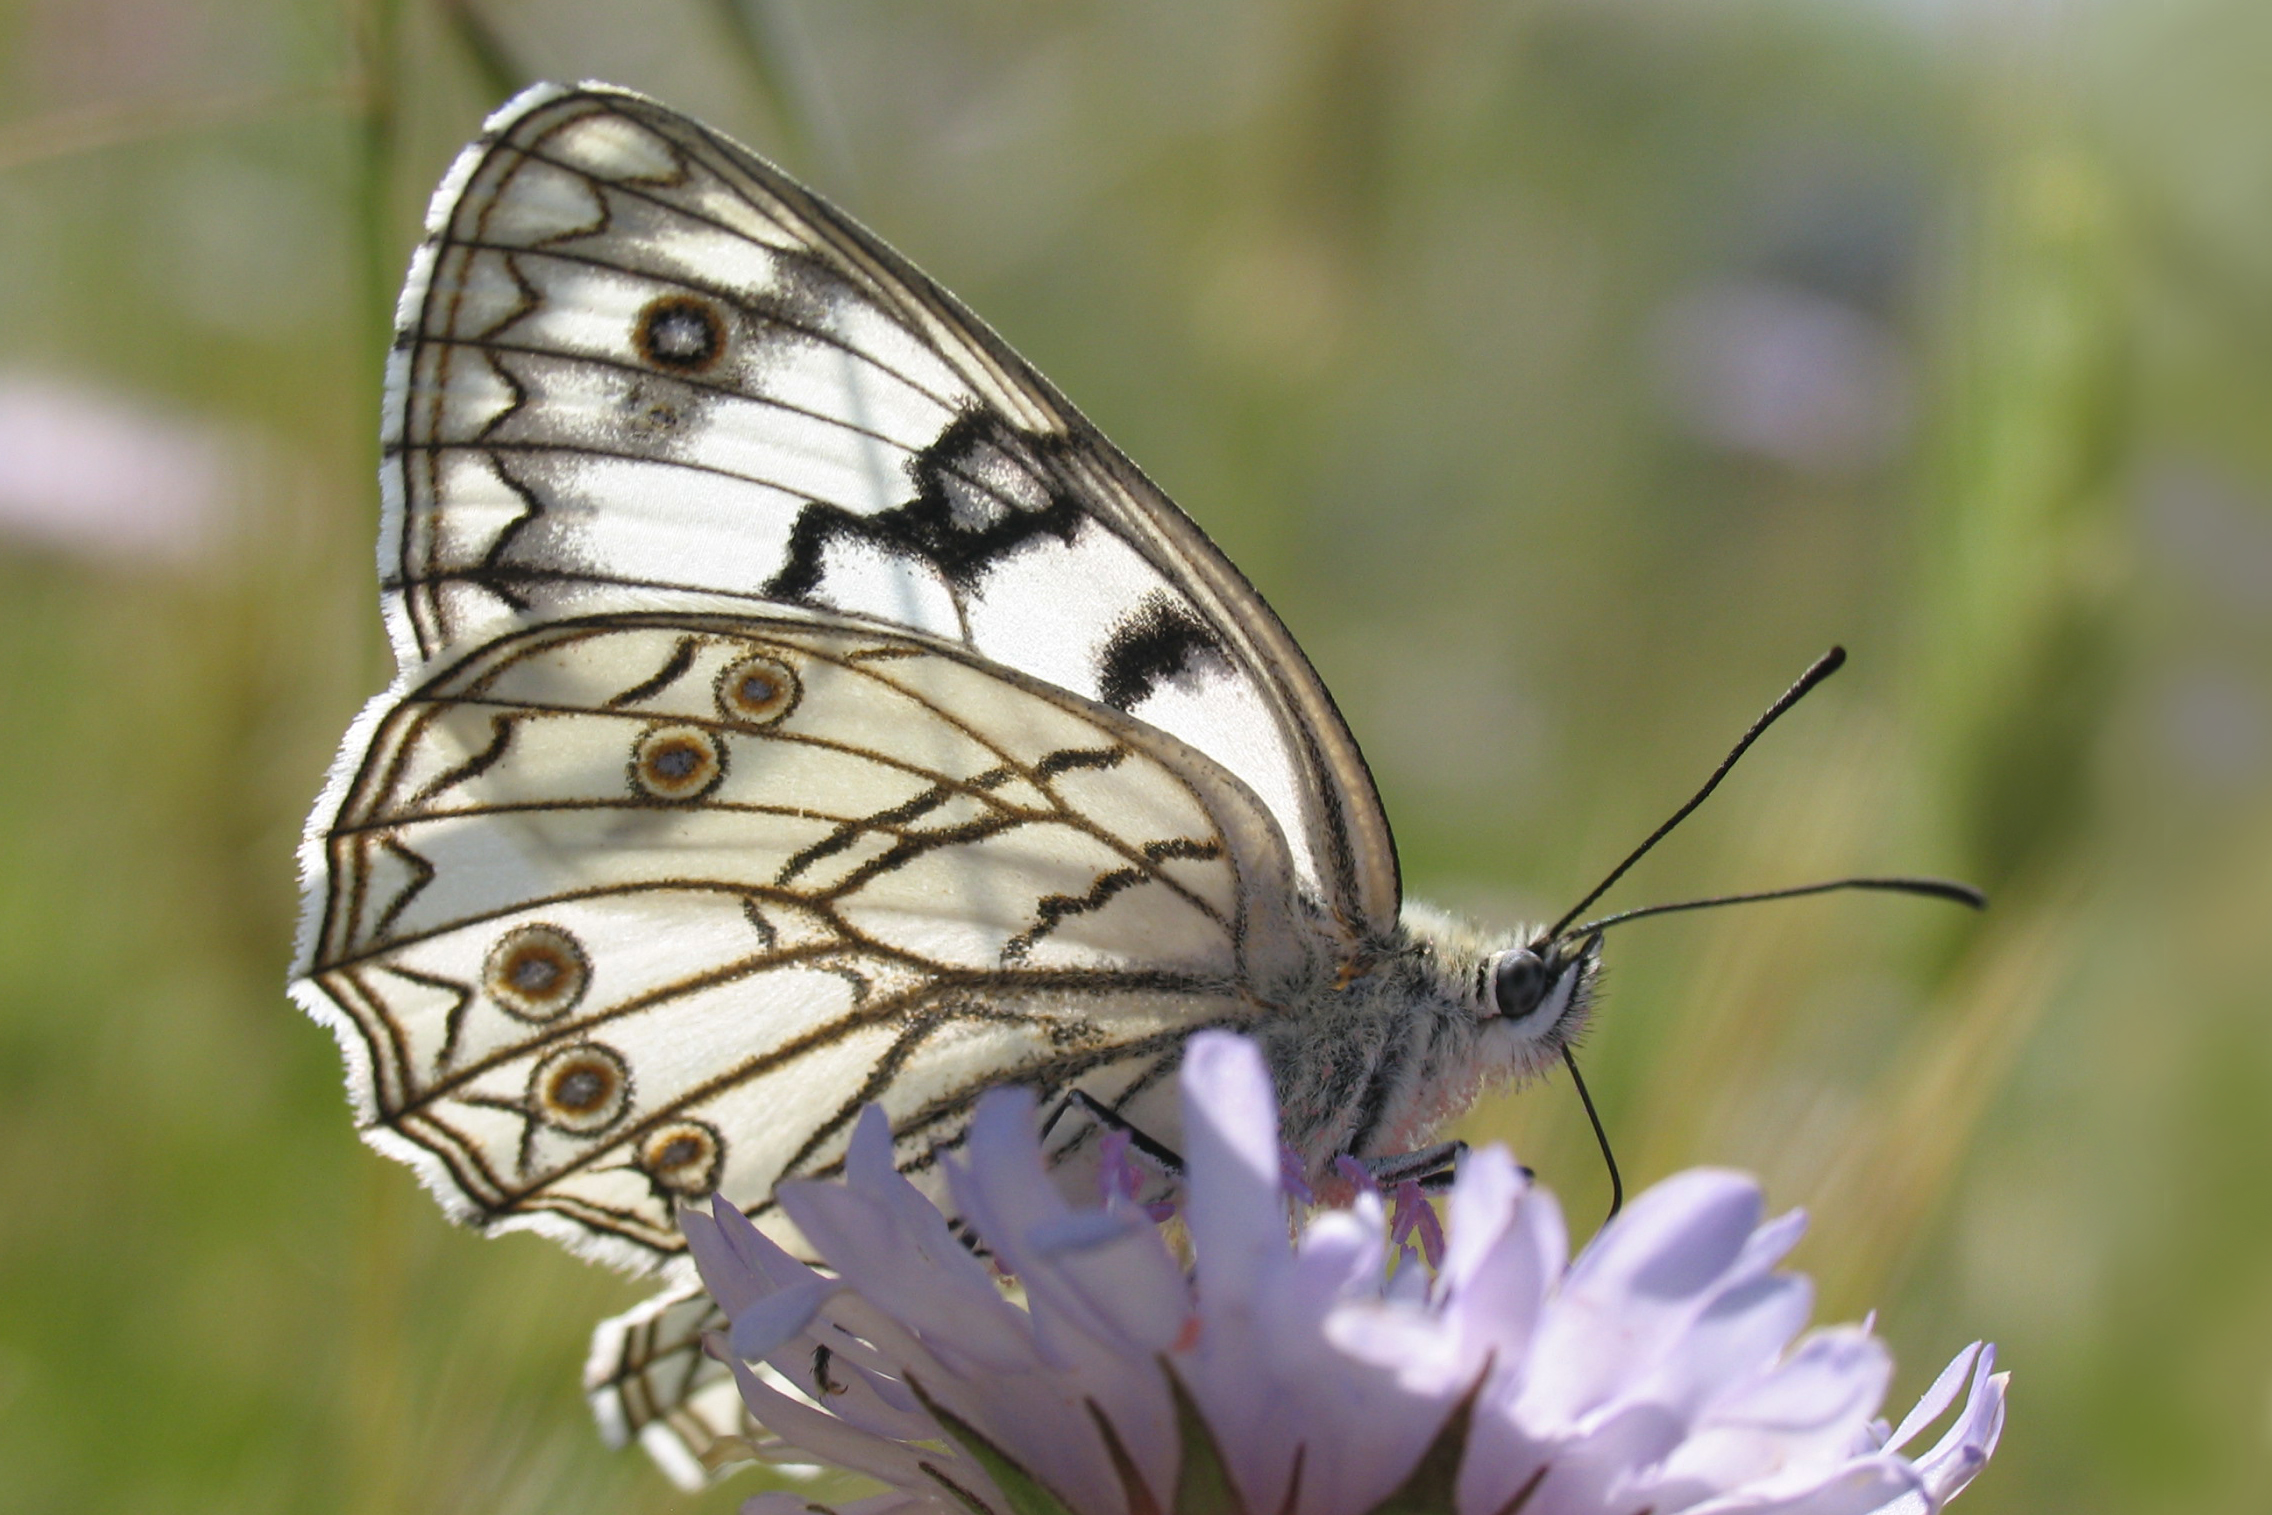 The protected butterfly Melanargia arge in coastal grasslands near Otranto (Lecce), Italy. Photo: R. Labadessa.